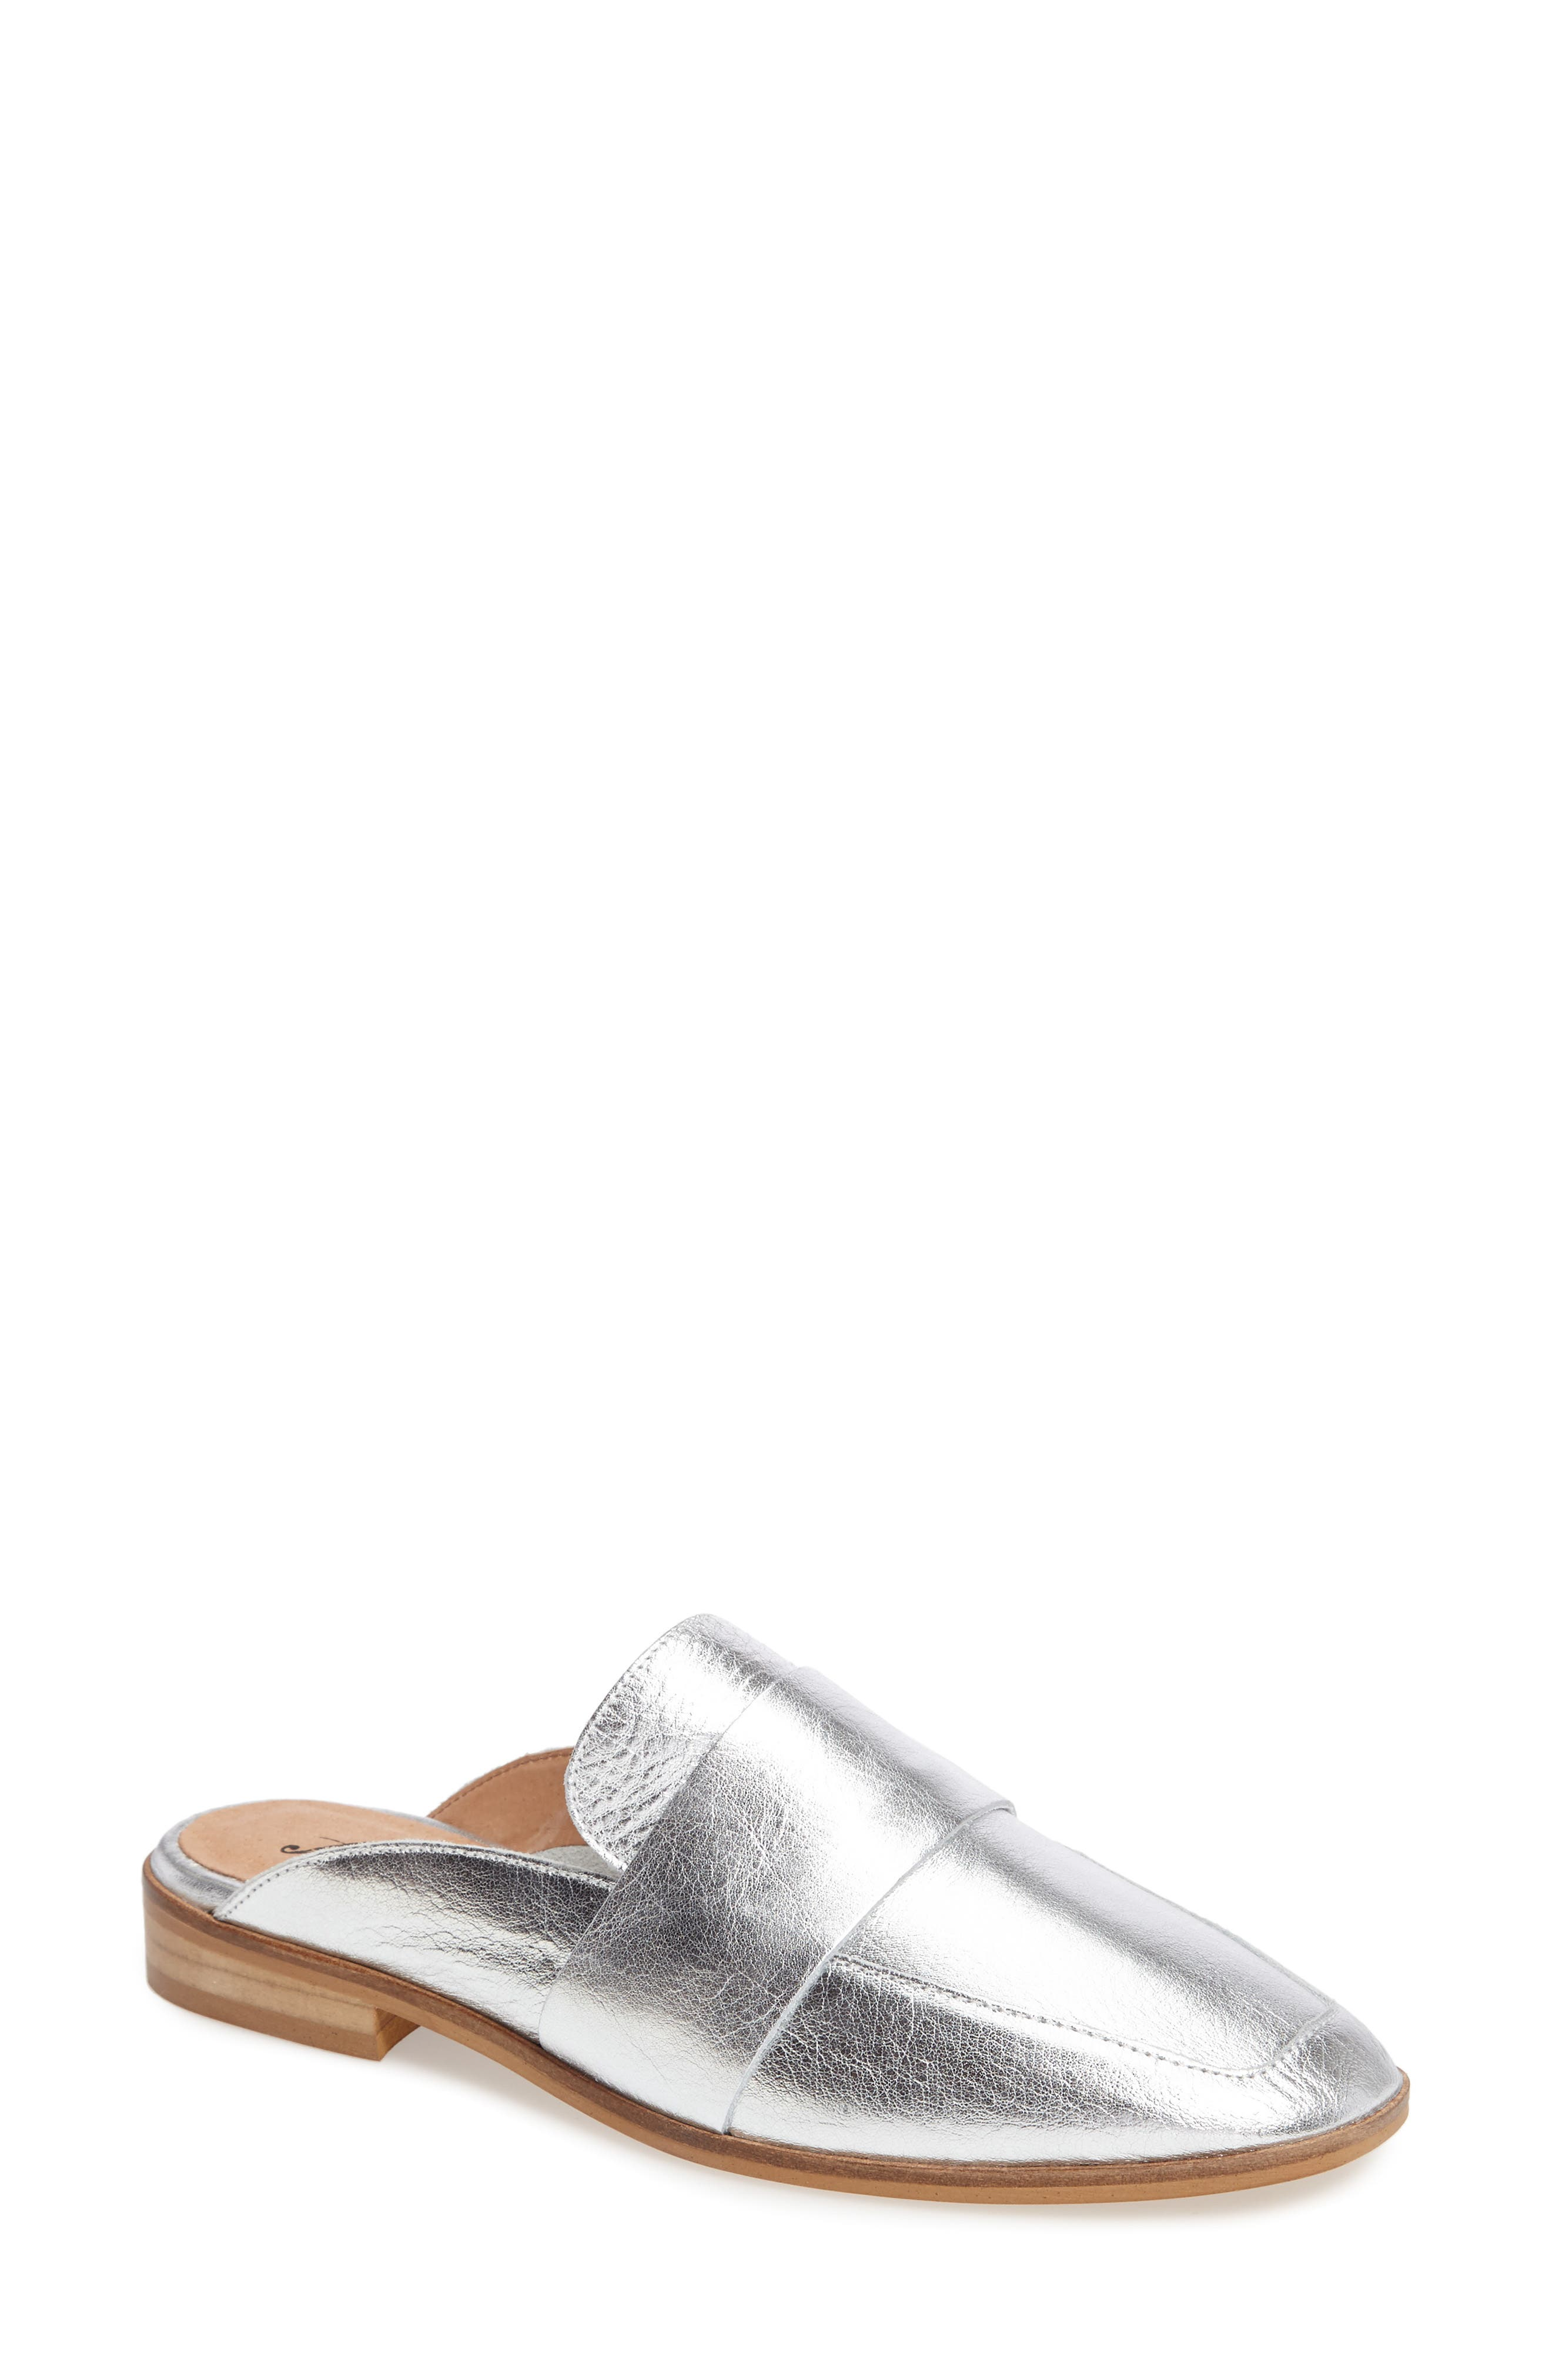 Alternate Image 1 Selected - Free People At Ease Loafer Mule (Women)